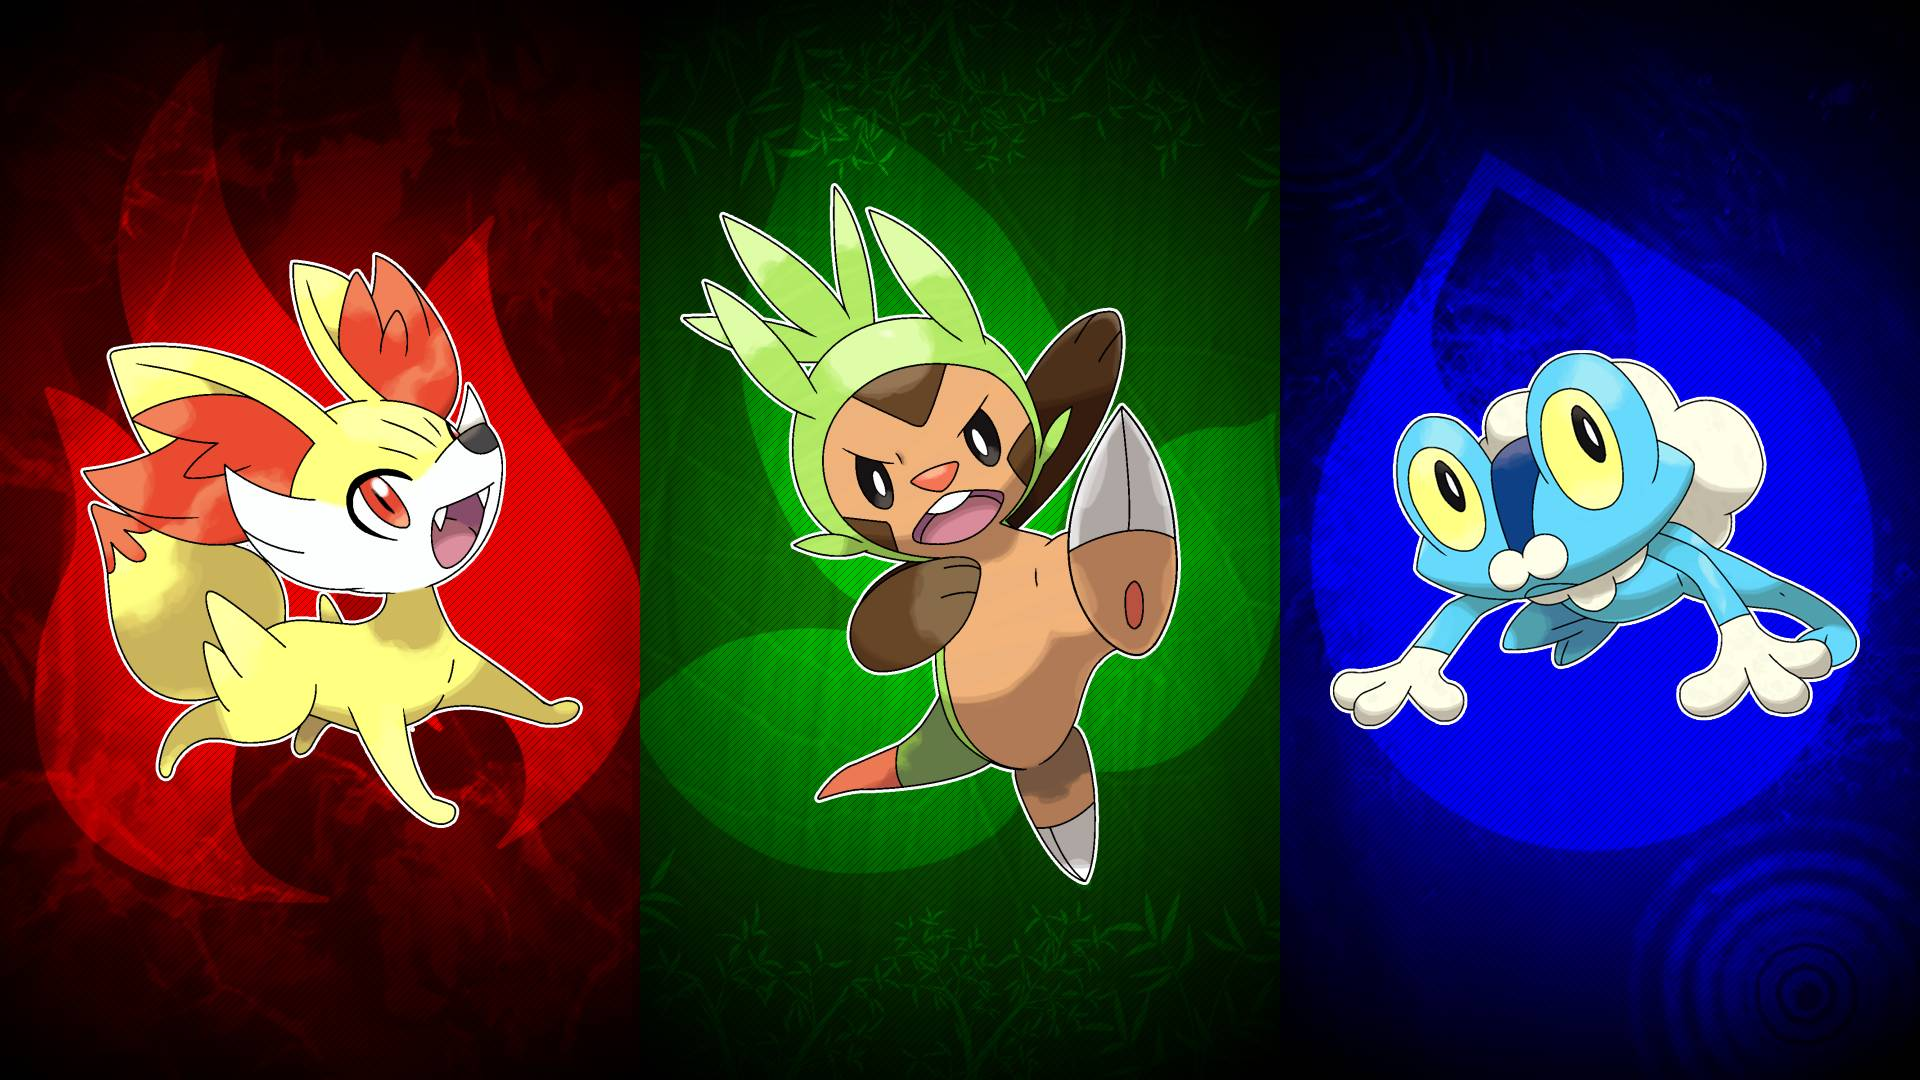 http://gamingbolt.com/wp-content/uploads/2013/01/pokemon-x-and-y-wallpapers-in-hd.jpg